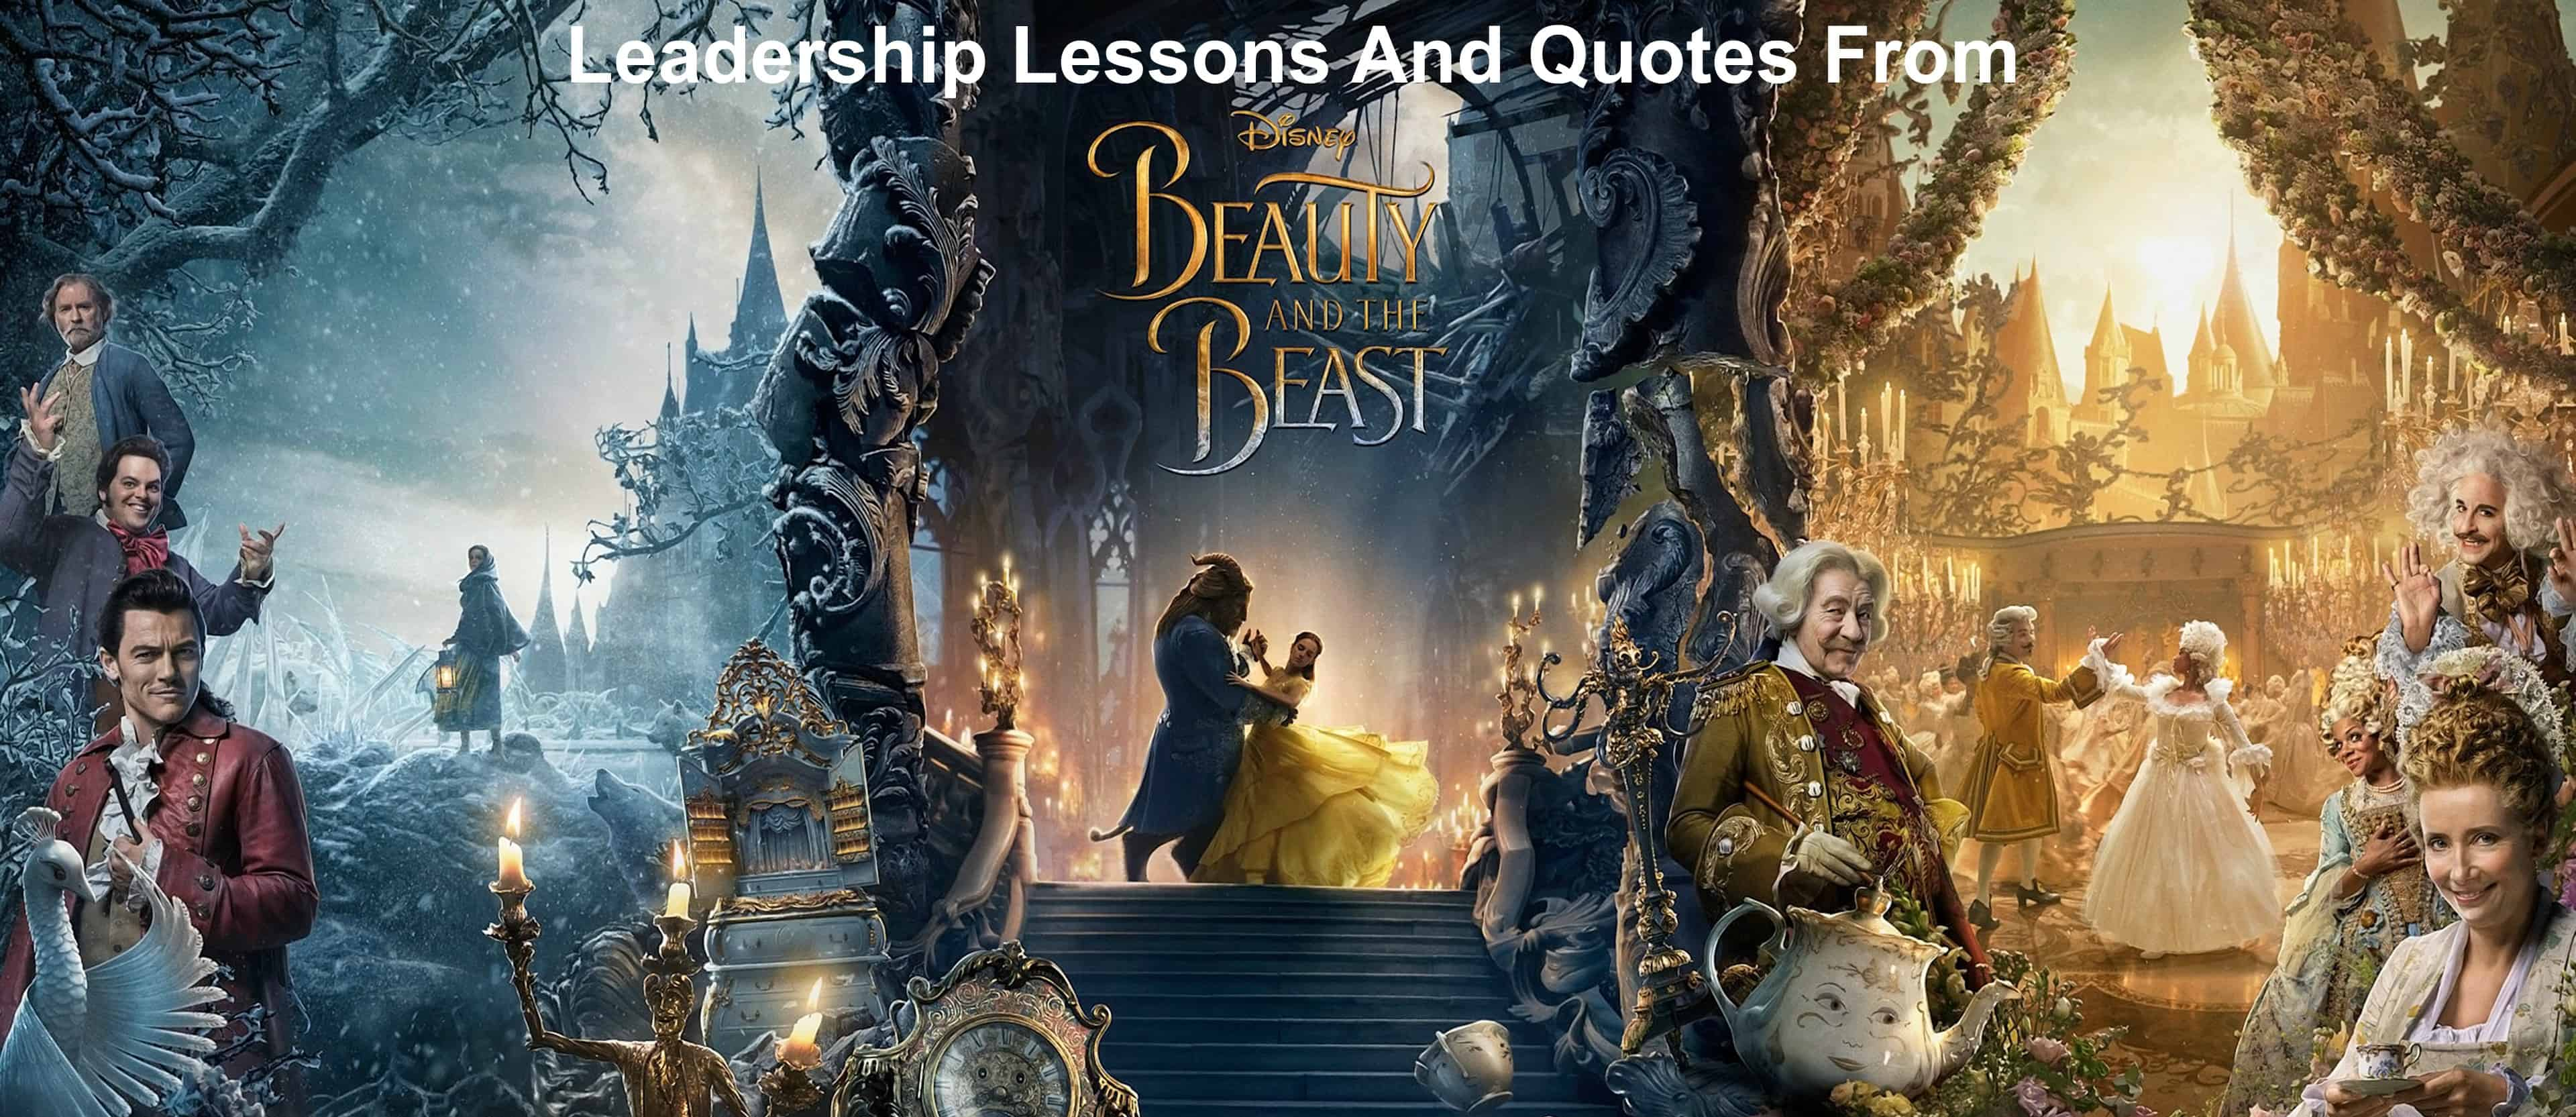 Leadership lessons and quotes from beauty and the beast 2017 leadership lessons and quotes from beauty and the beast voltagebd Image collections